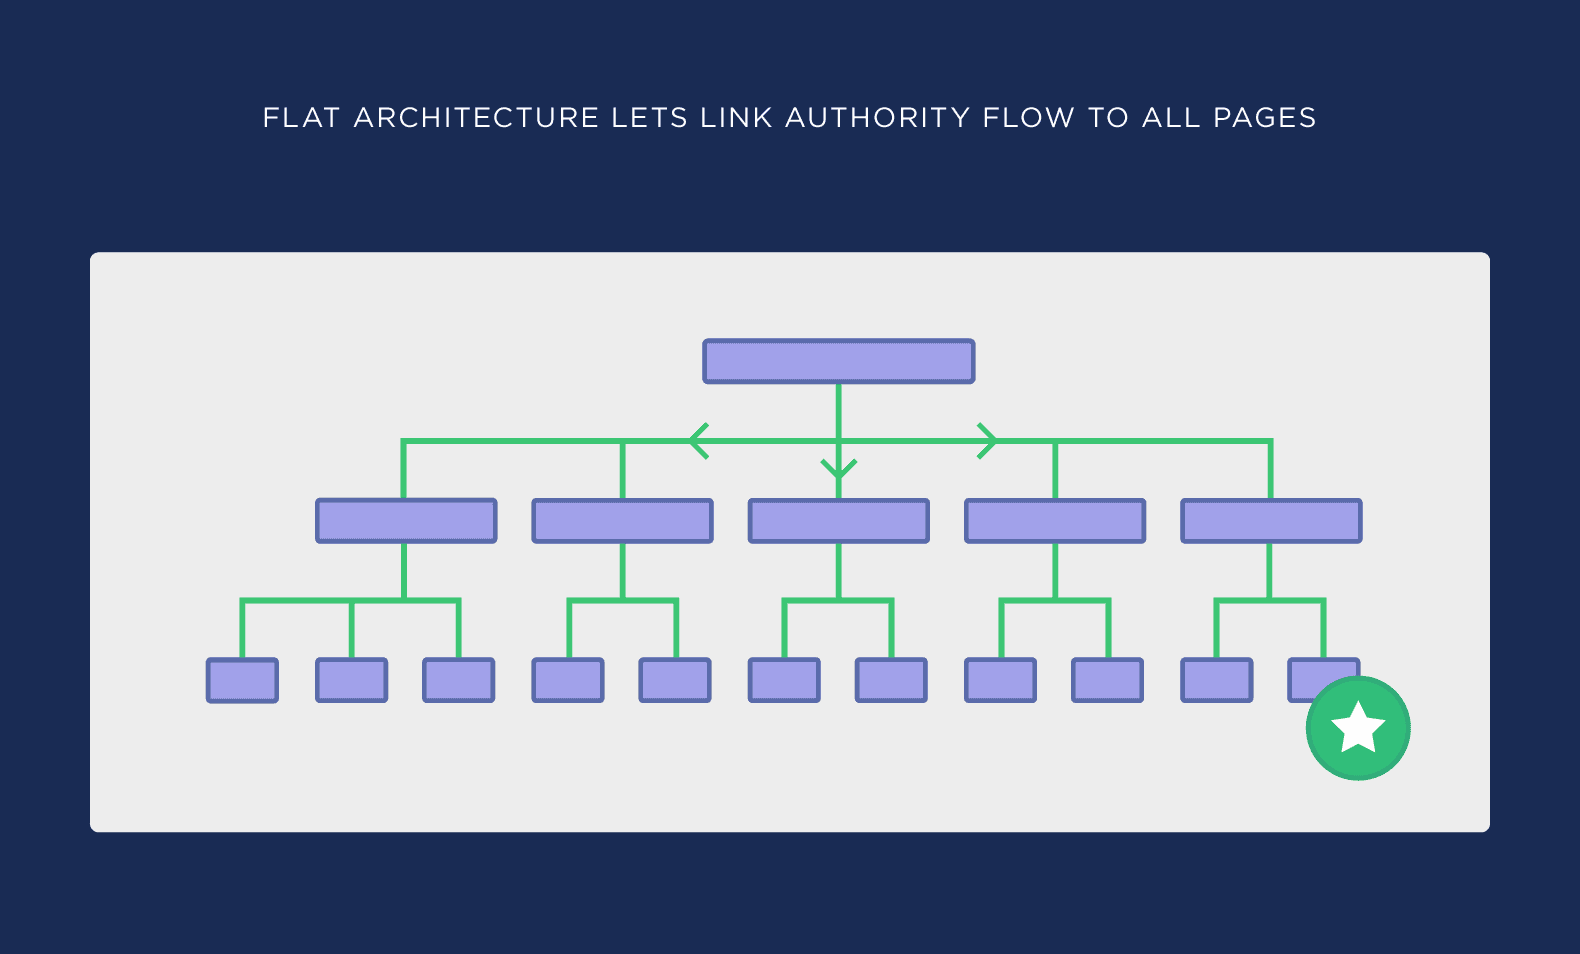 Flat architecture lets link authority flow to all pages